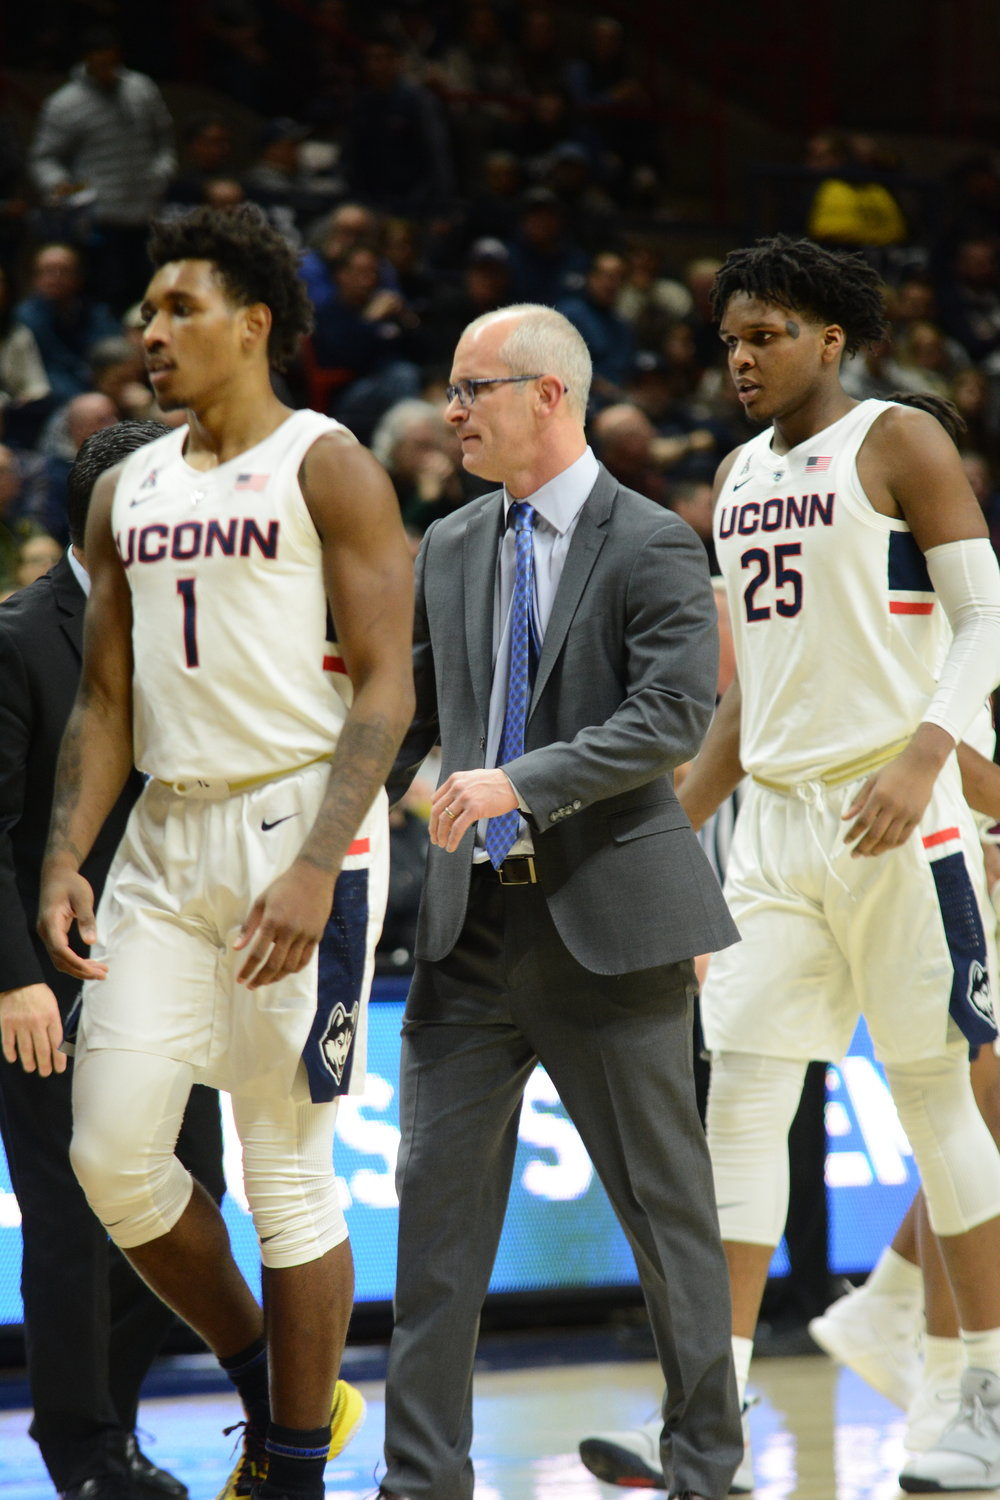 Christian VItal (left) walks with UConn head coach Dan Hurley (center) and Josh Carlton (right). Vital scored 18 points and joined the 1,000 point club, and Carlton scored a career-high 18 points in UConn's win on Saturday at Gampel. (Eric Wang/The Daily Campus)